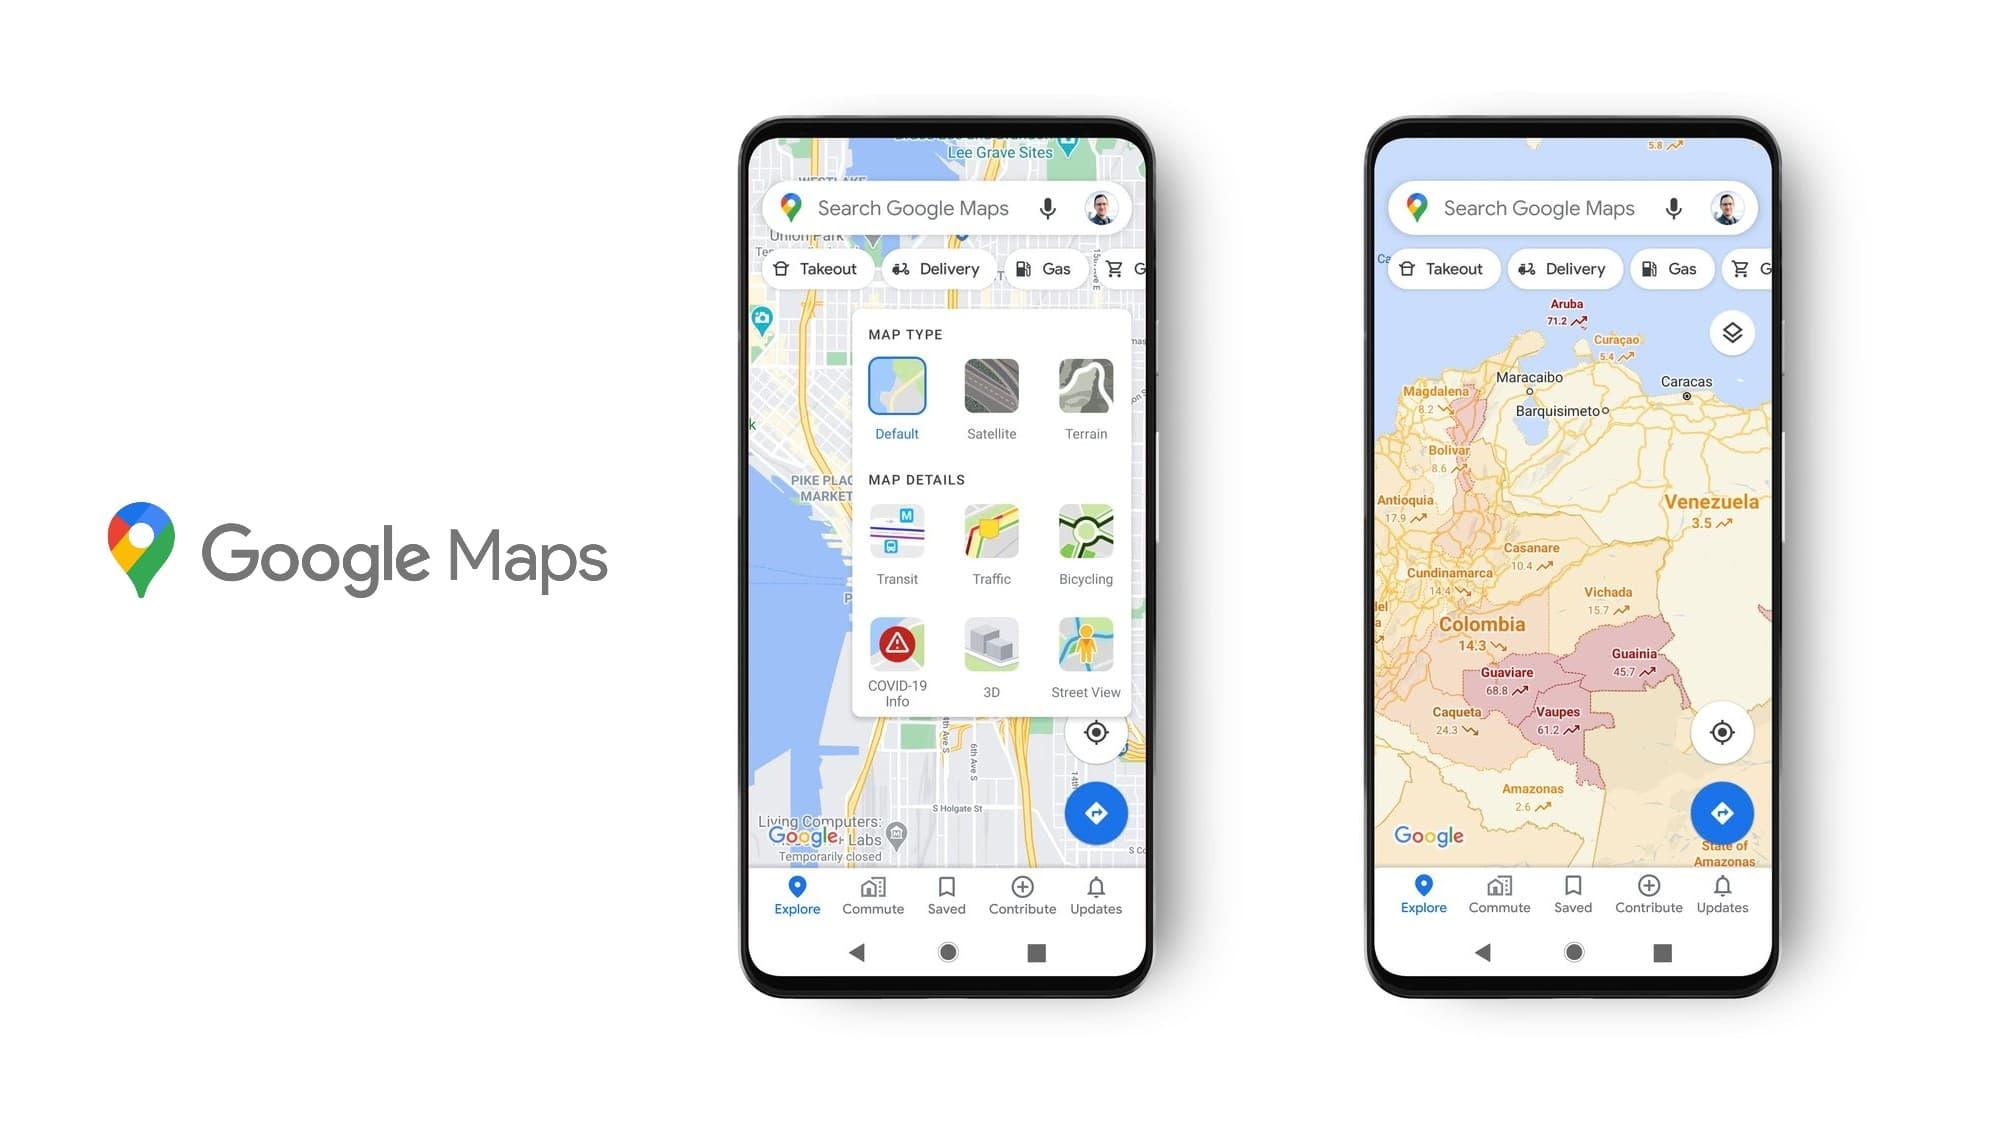 Google Maps update adds data layer for COVID-19 cases near you